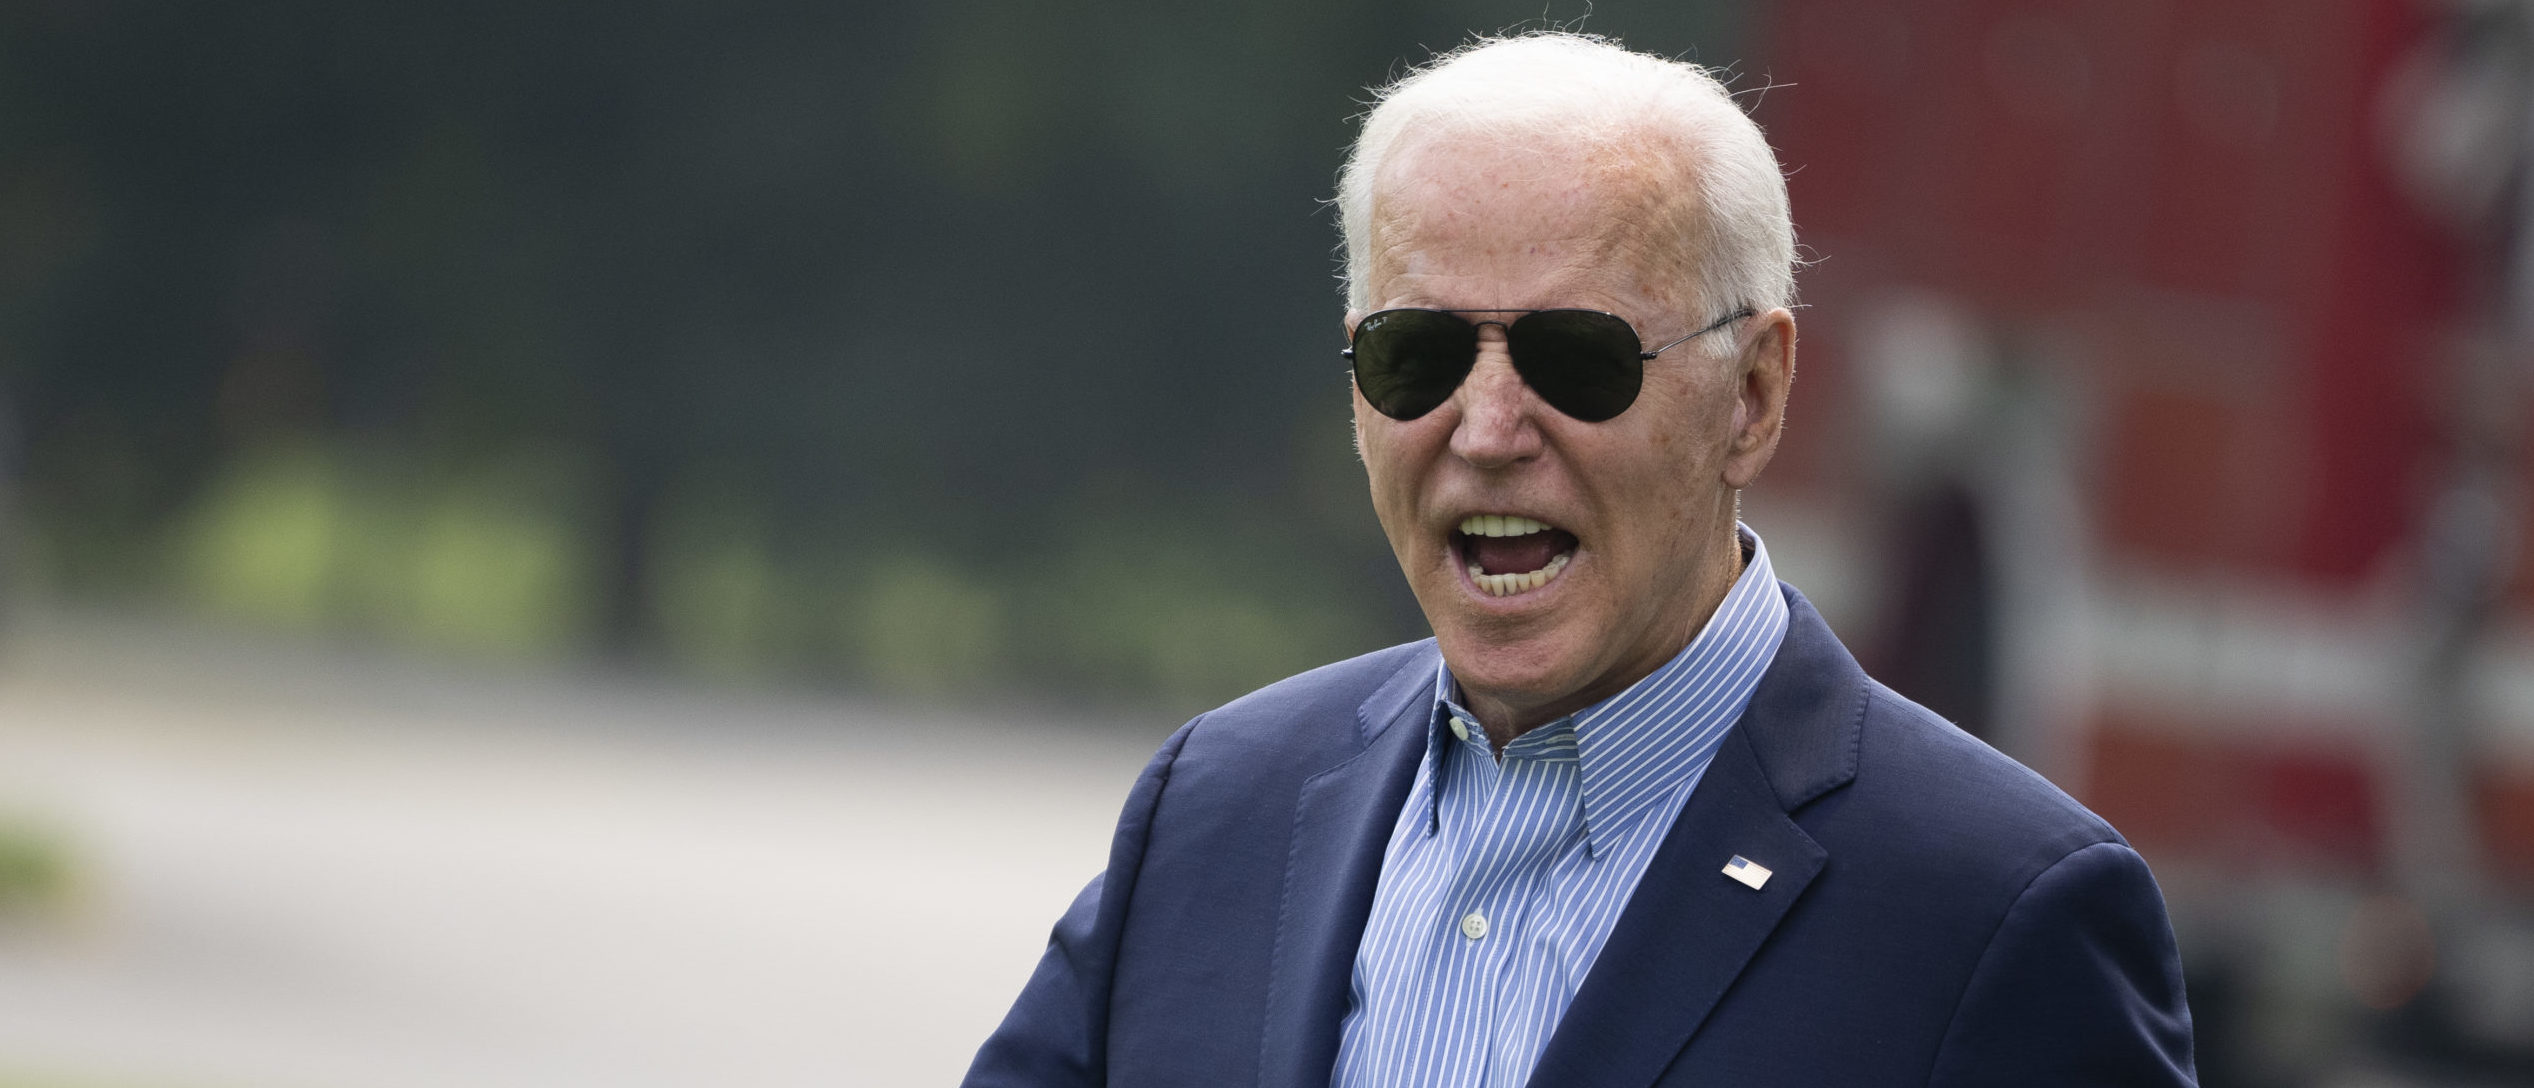 WASHINGTON, DC - JULY 21: U.S. President Joe Biden reacts to shouted questions from reporters as he walks to Marine One on the South Lawn of the White House on July 21, 2021 in Washington, DC. Biden is traveling to the Cincinnati, Ohio area to visit a training center for the International Brotherhood of Electrical Workers and for a town hall event with CNN. (Photo by Drew Angerer/Getty Images)